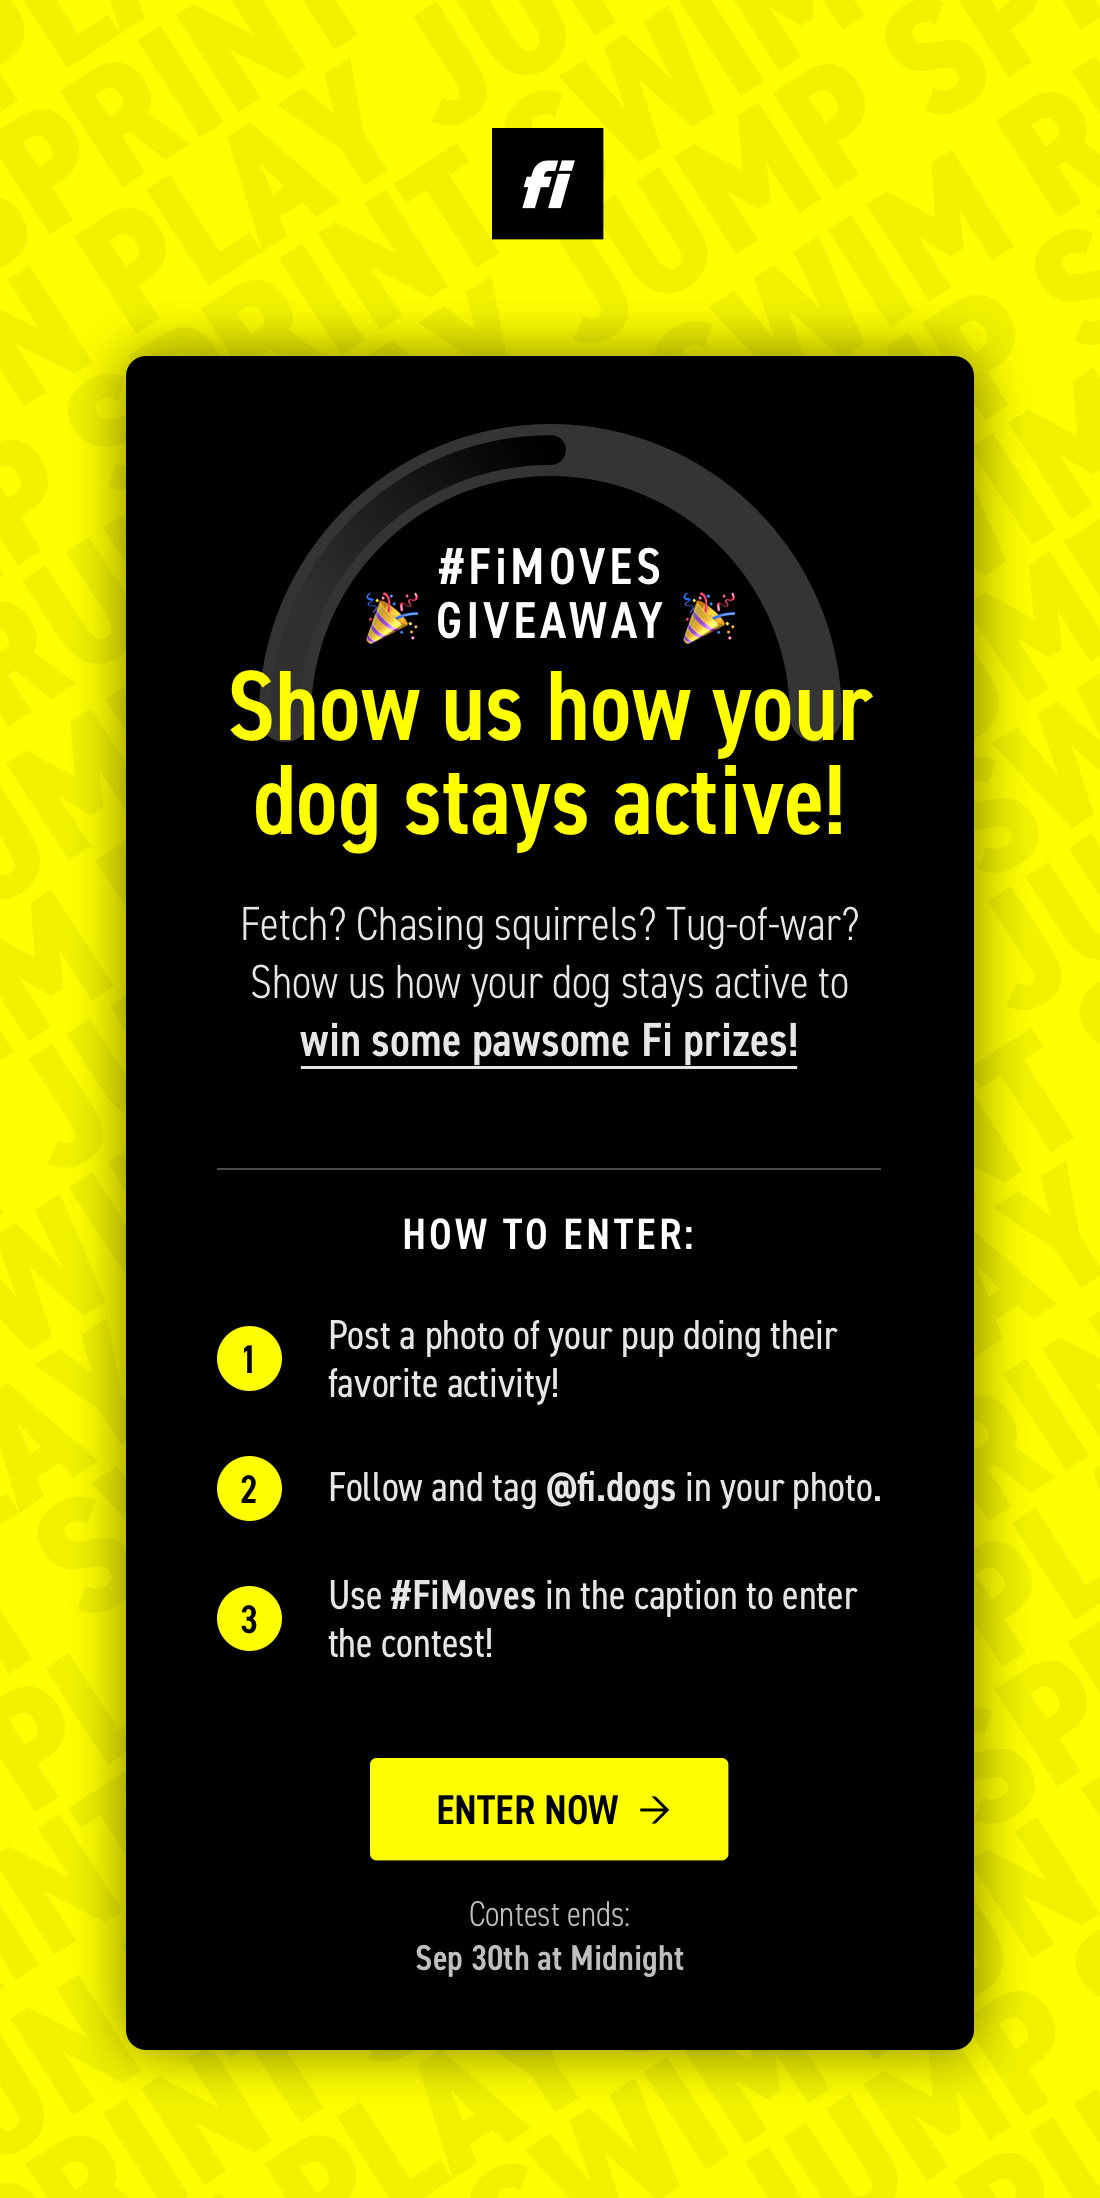 #FiMoves Giveaway